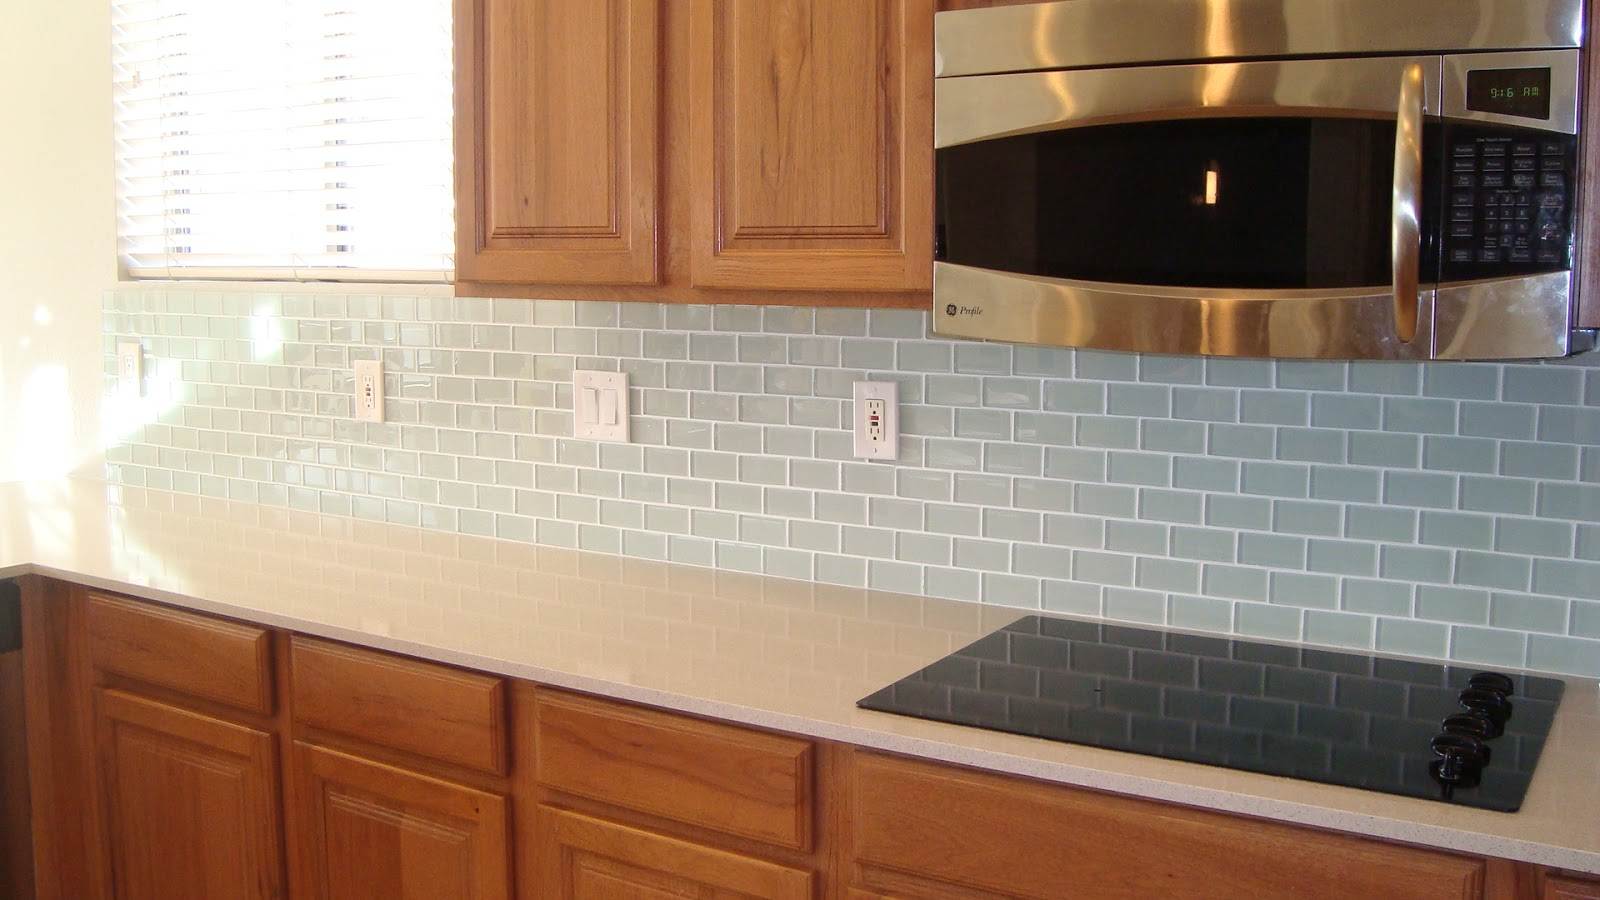 christine 39 s favorite things glass tile backsplash